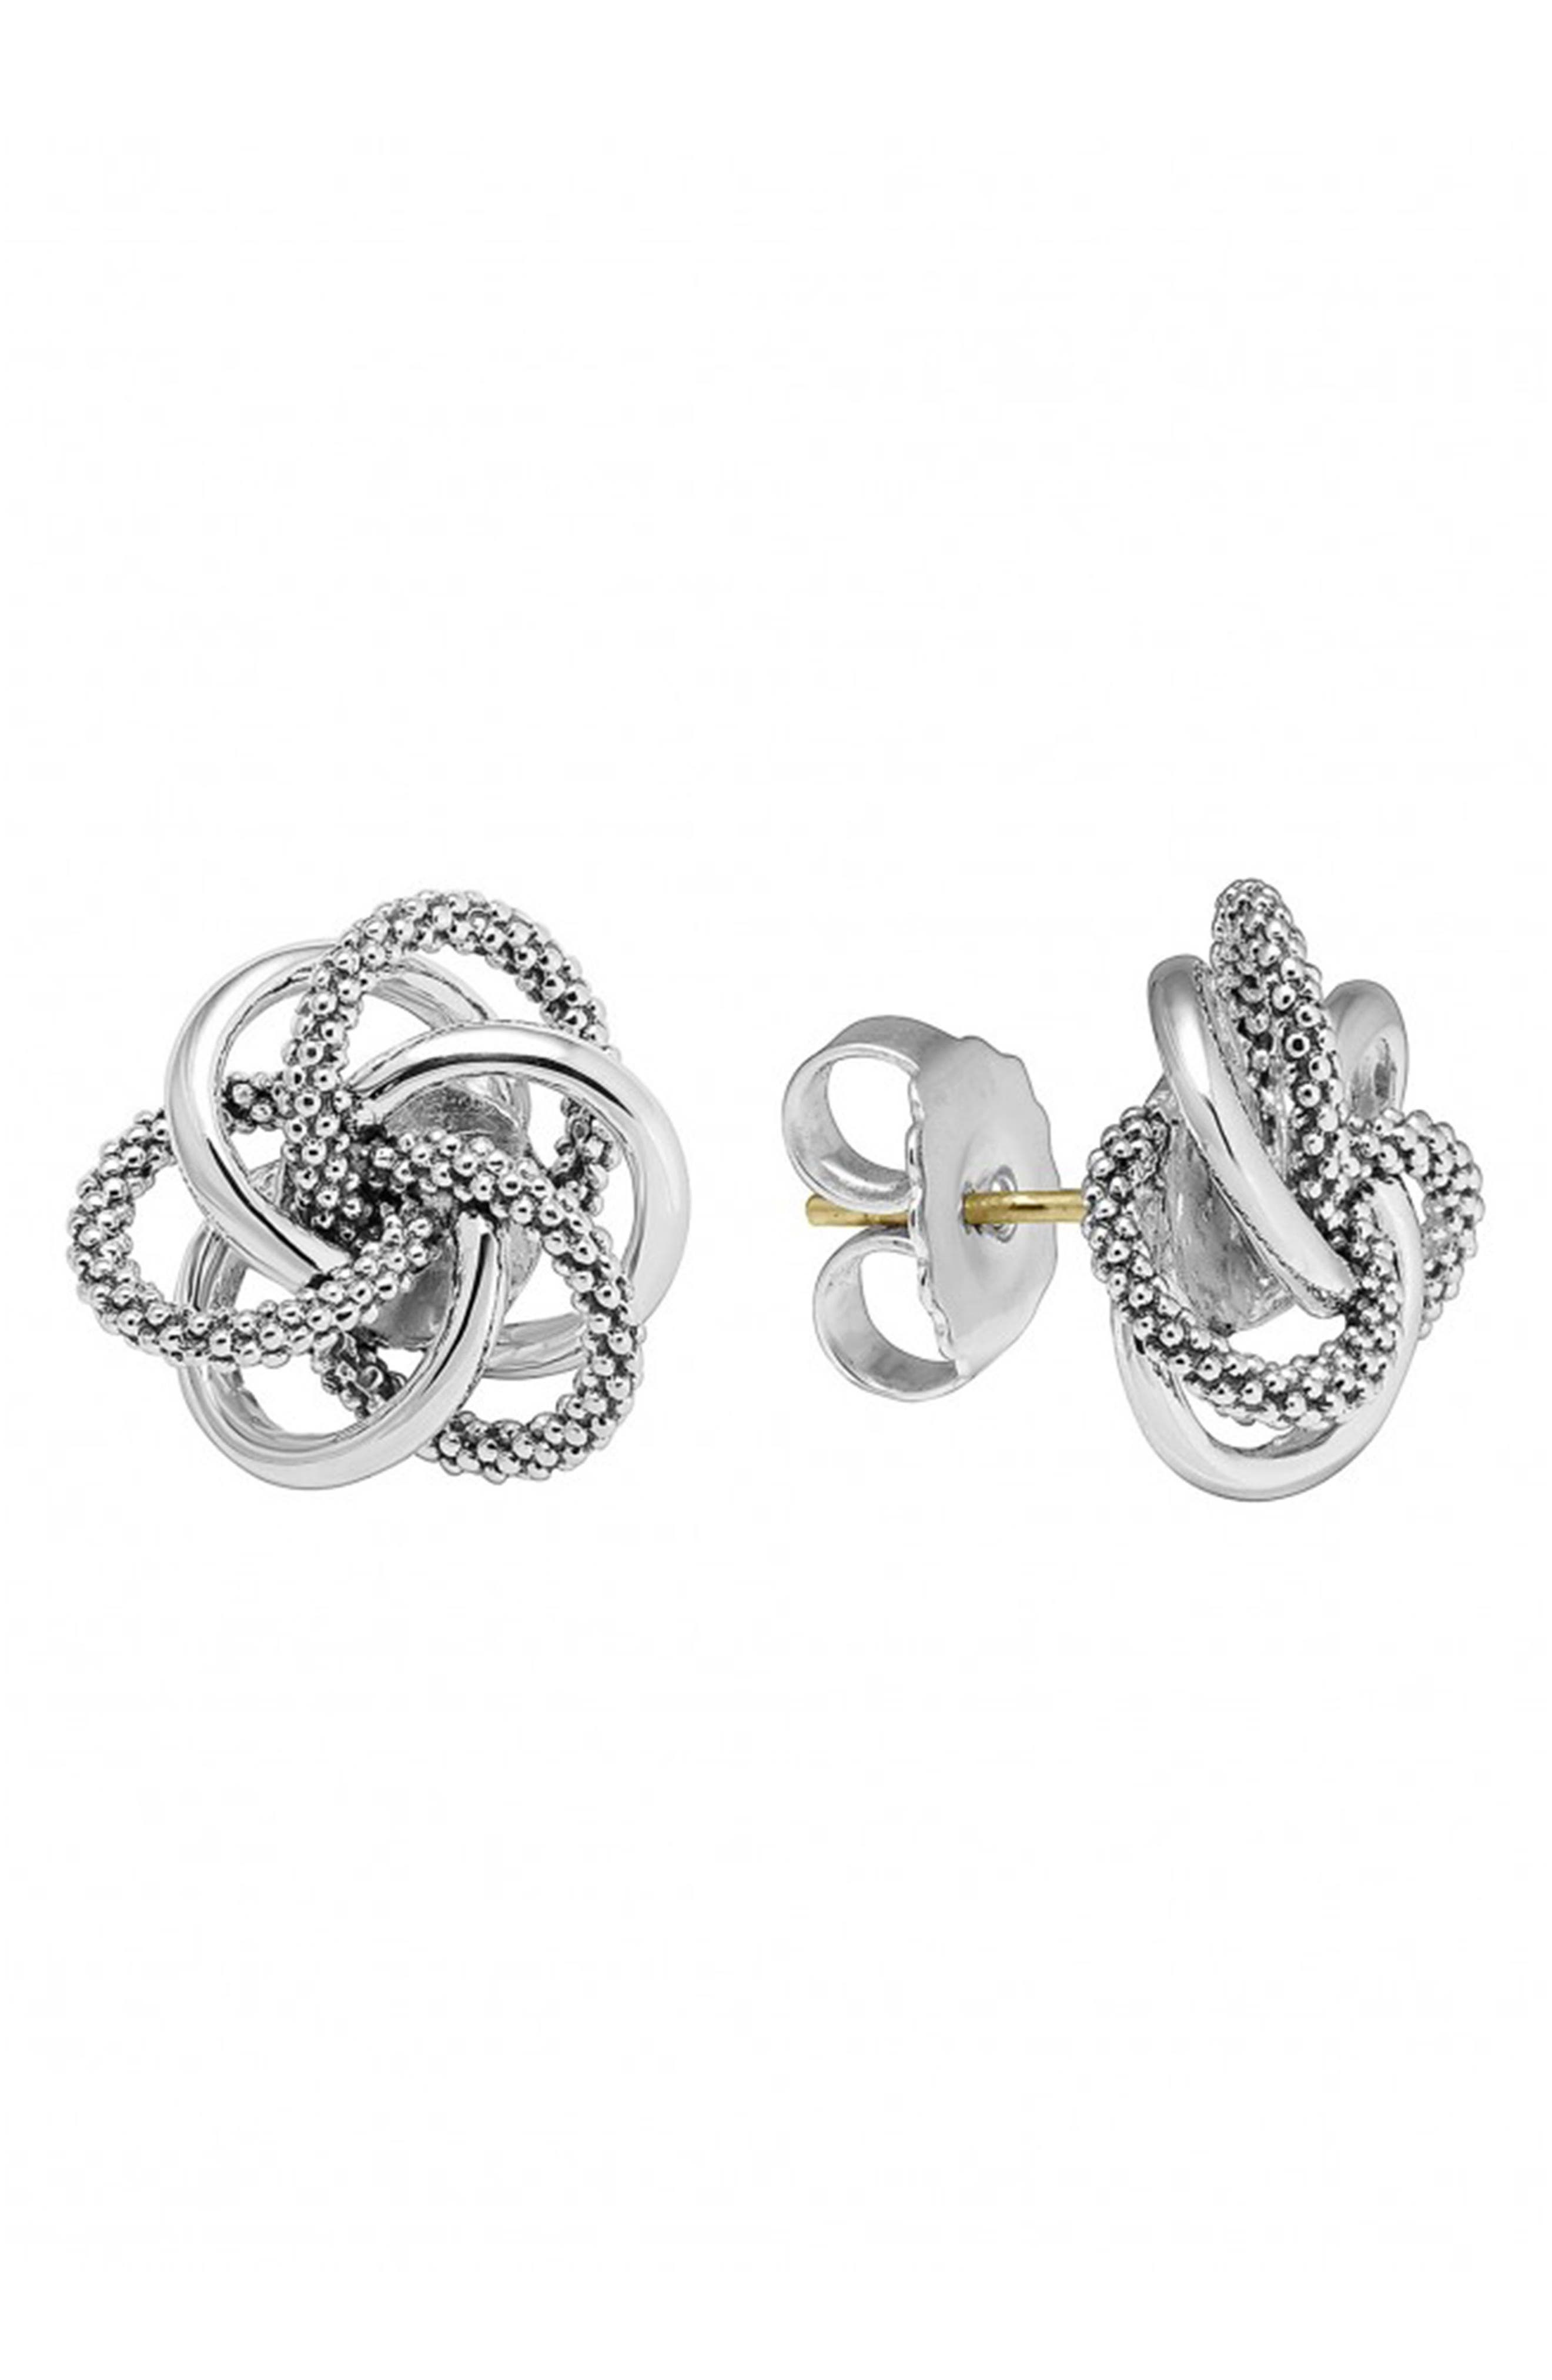 Caviar<sup>™</sup> Stud Earrings,                             Alternate thumbnail 3, color,                             STERLING SILVER